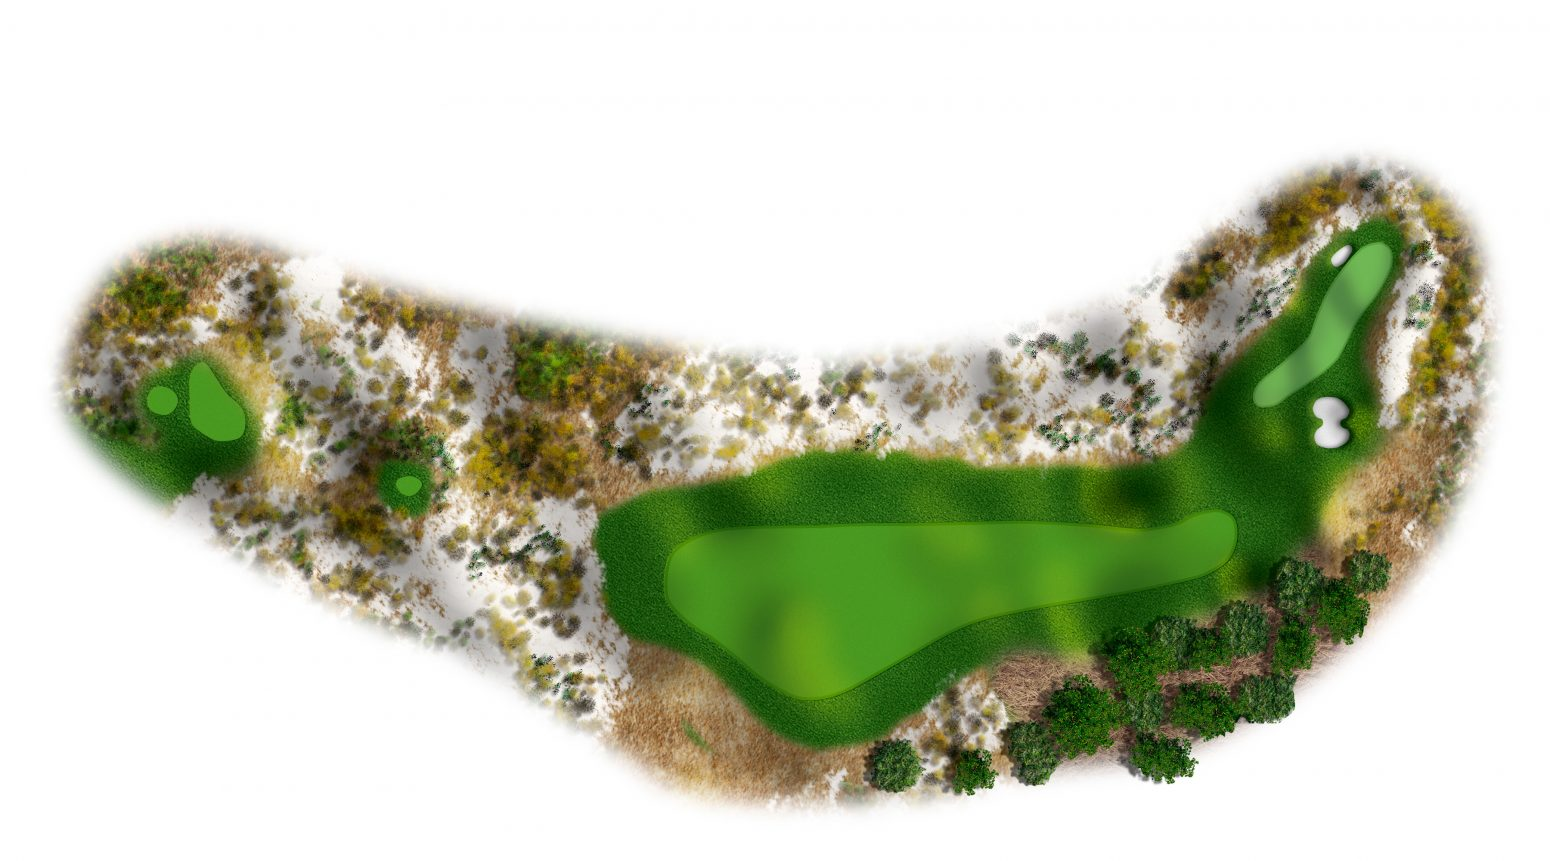 4th hole at Spyglass Hill map